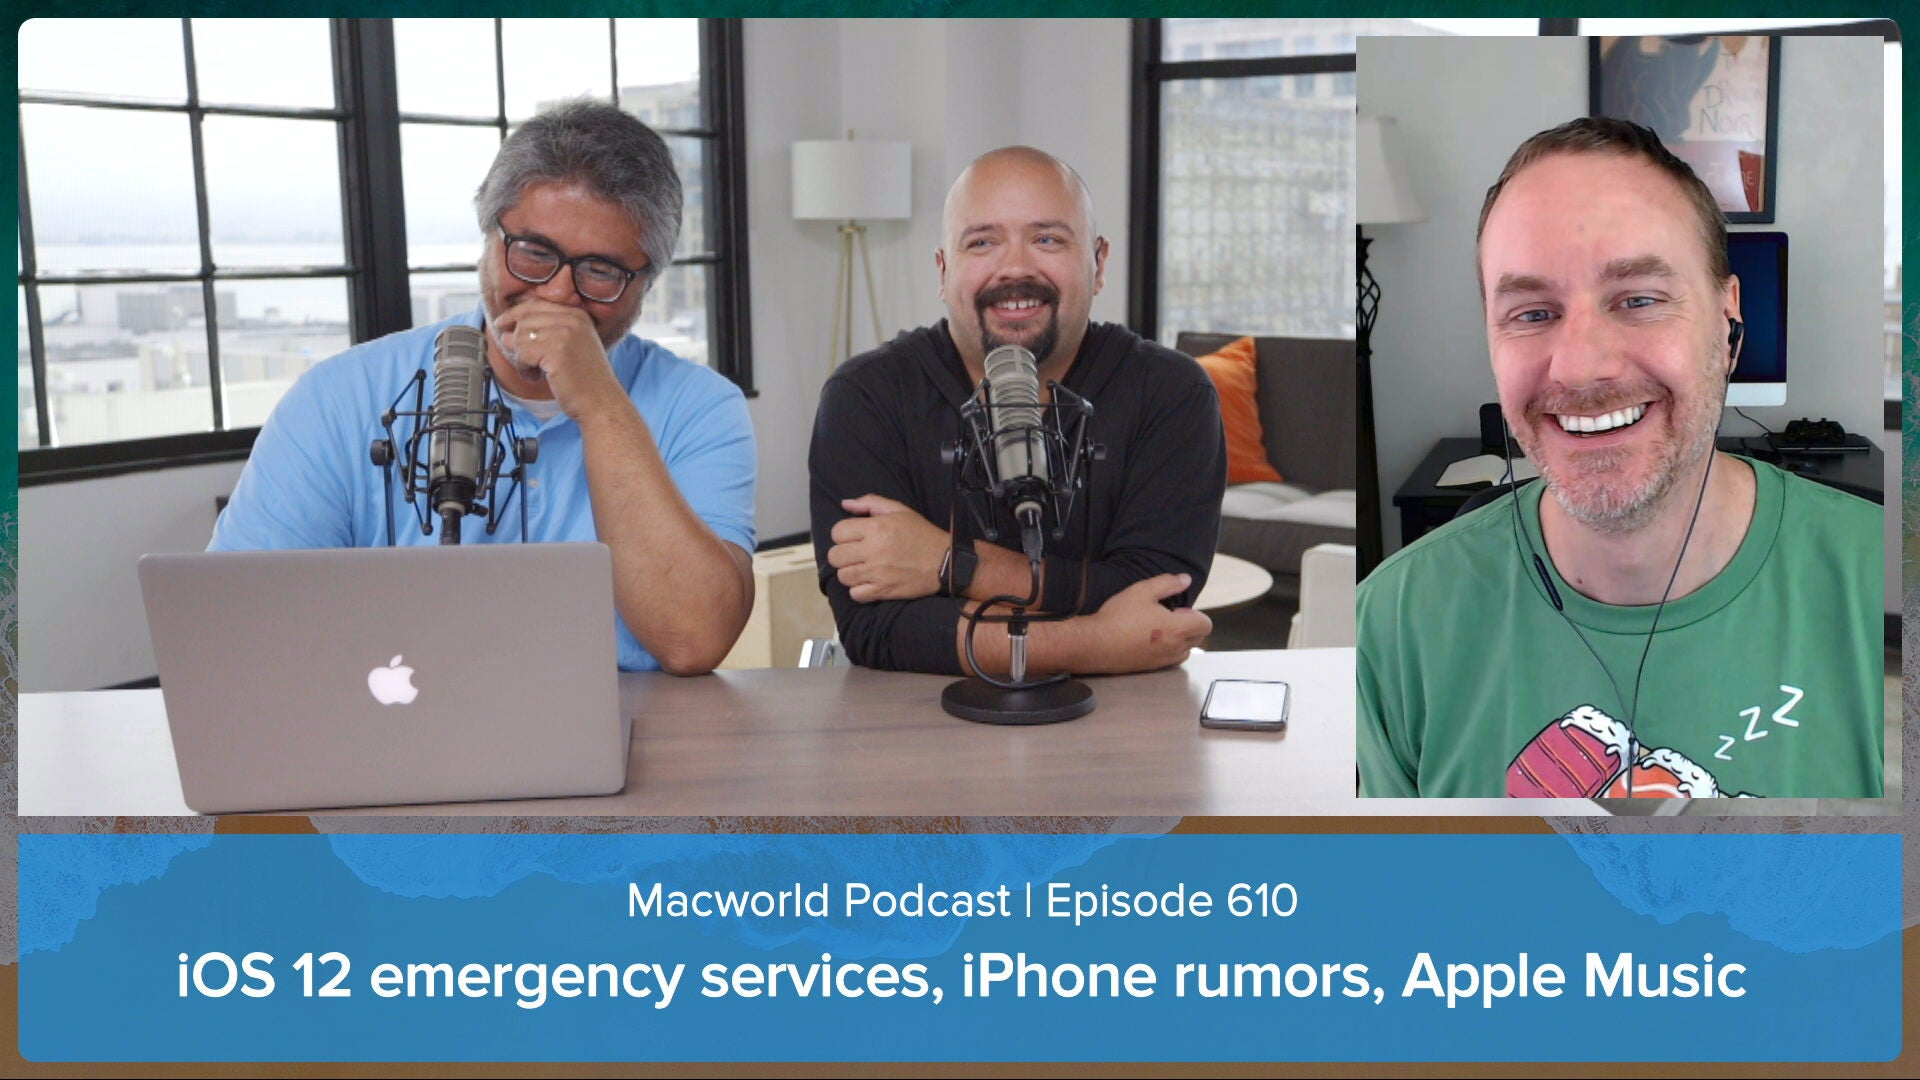 Macworld Podcast 610